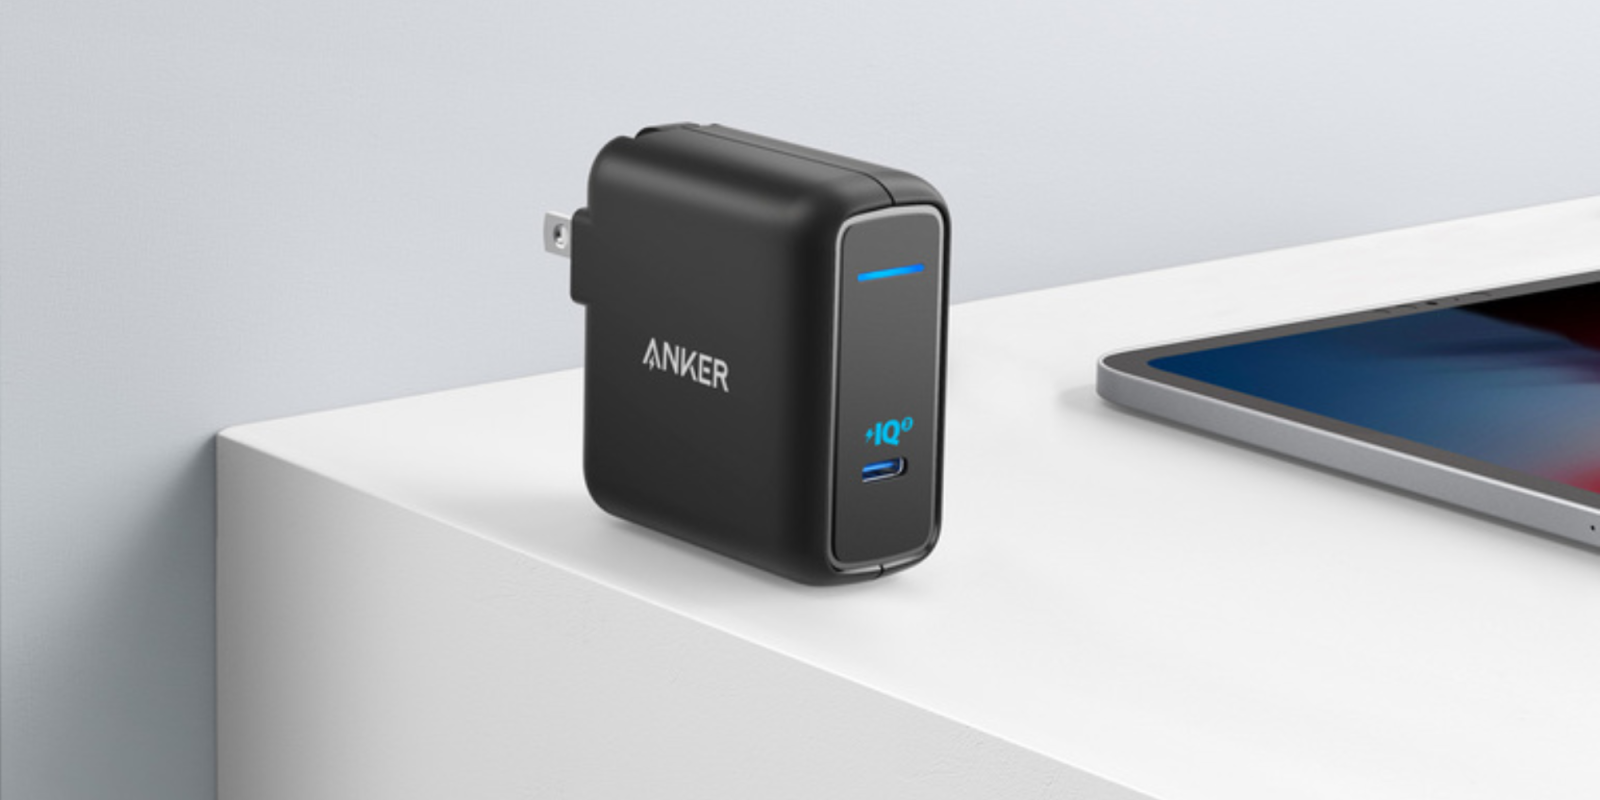 Charge just about any MacBook with Anker's $28 60W GaN USB-C PD adapter